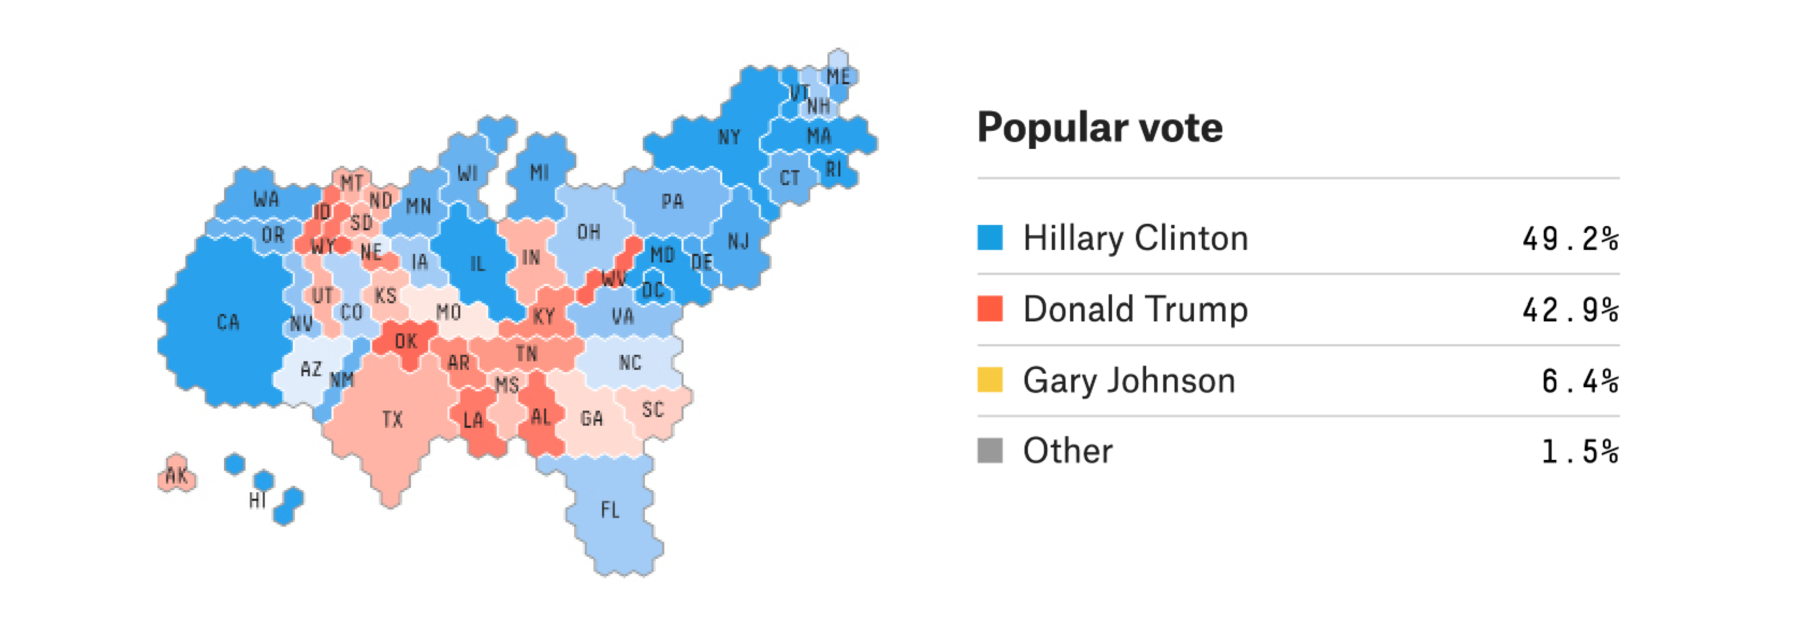 but then i d scroll down to the popular vote and would be confronted with a really really close forecast